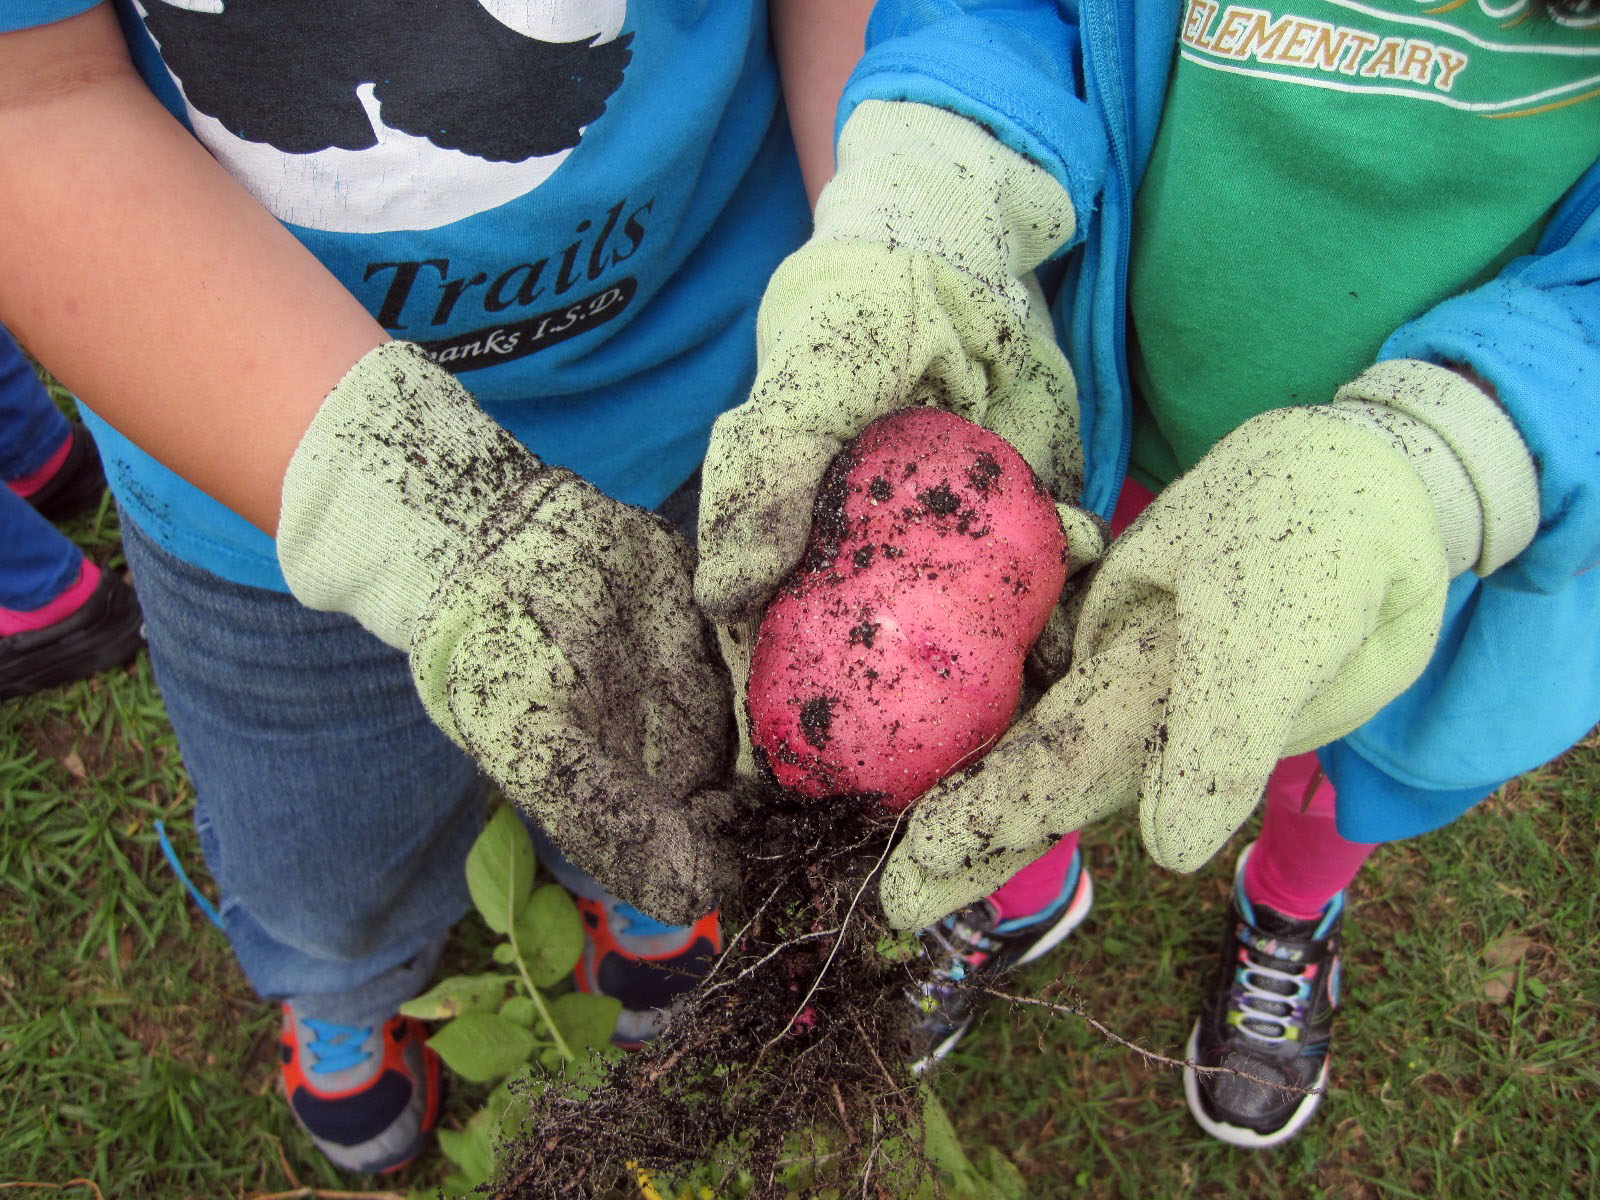 At Bang Elementary, red potato harvest